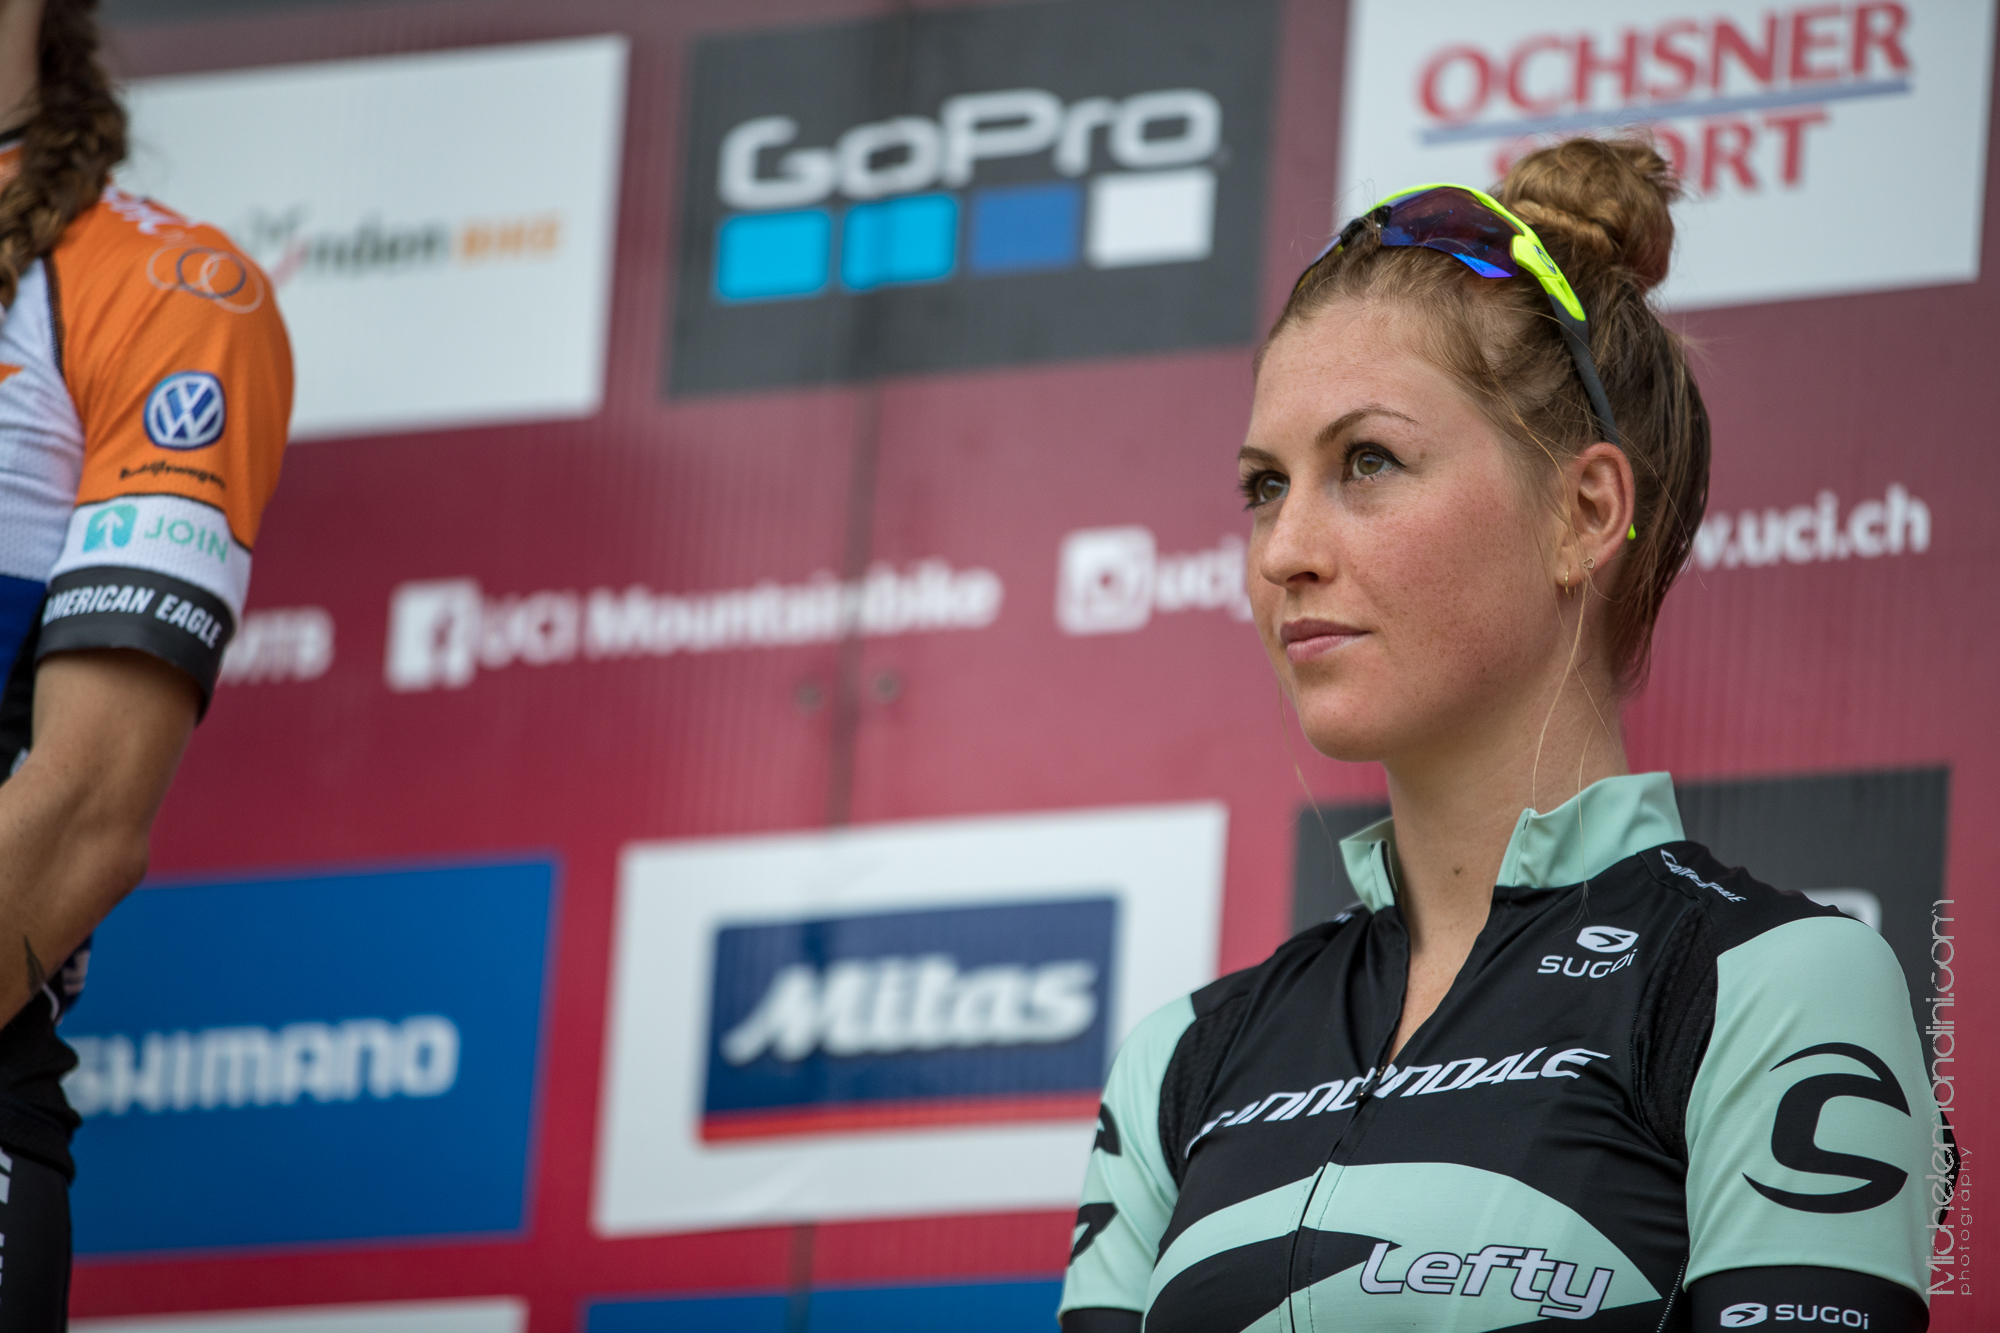 Helen Grobert on the podium in Lenzerheide - Ph: Michele Mondini